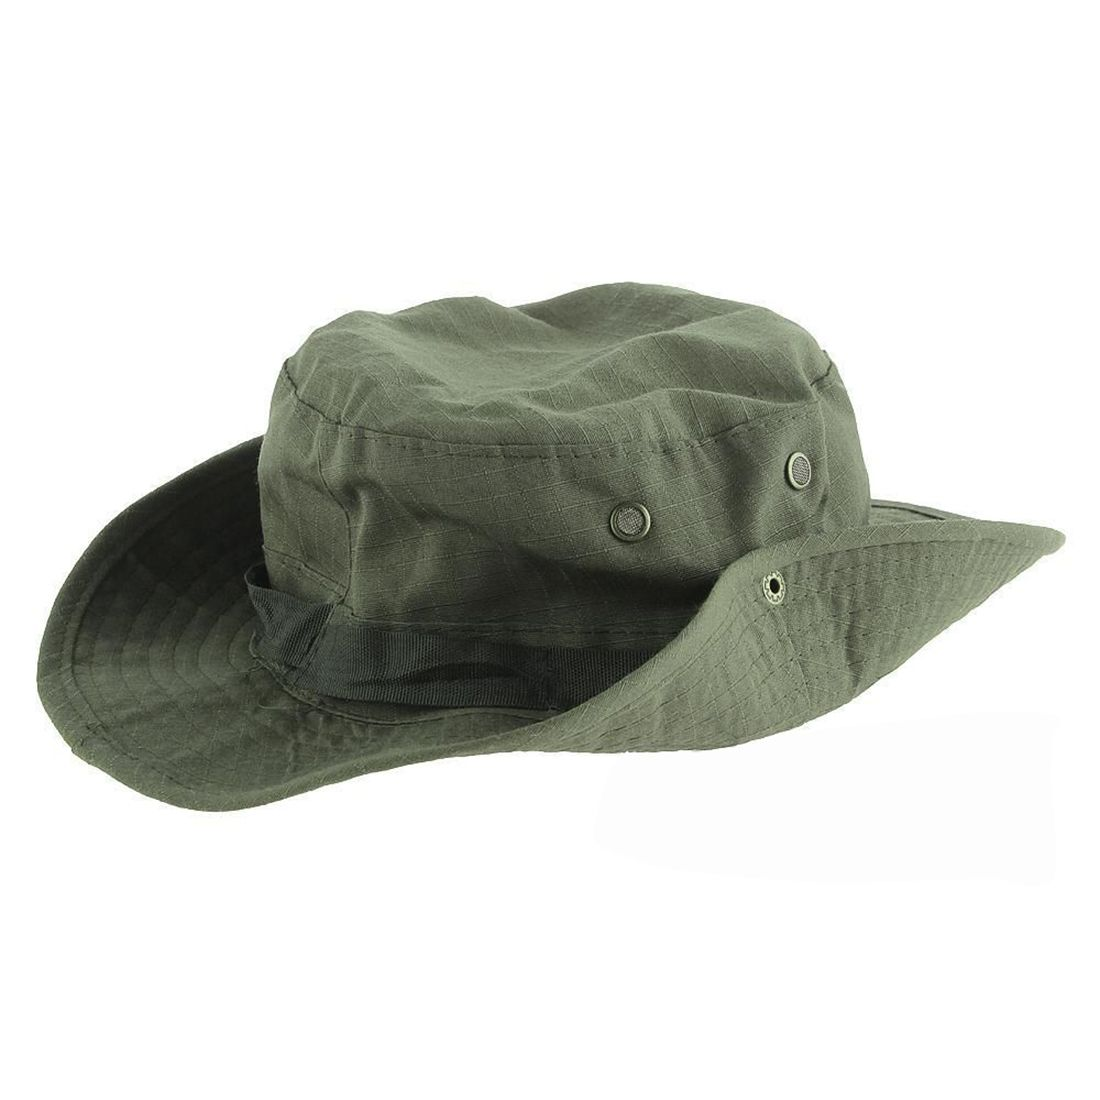 e4624dcc362 Wide Brim Bucket Hat Fishing Camping Sunshade Hat Army Green Traveling  Hiking Bonnie Hat With Adjustable Straps Mens Sports Caps